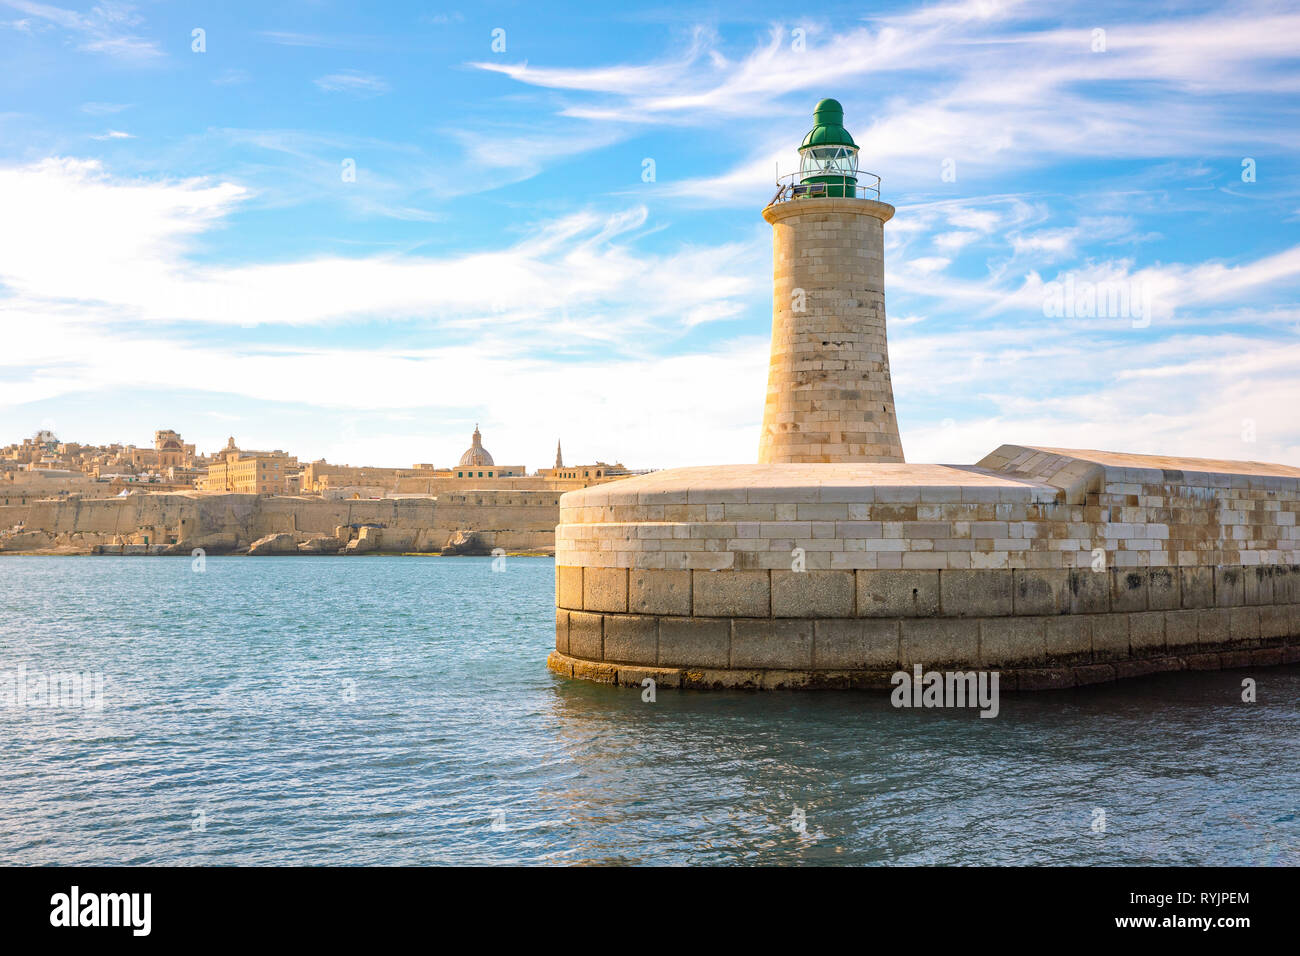 Malta, Valletta, view from the sea of the lighthouse of the St Elmo fort Stock Photo